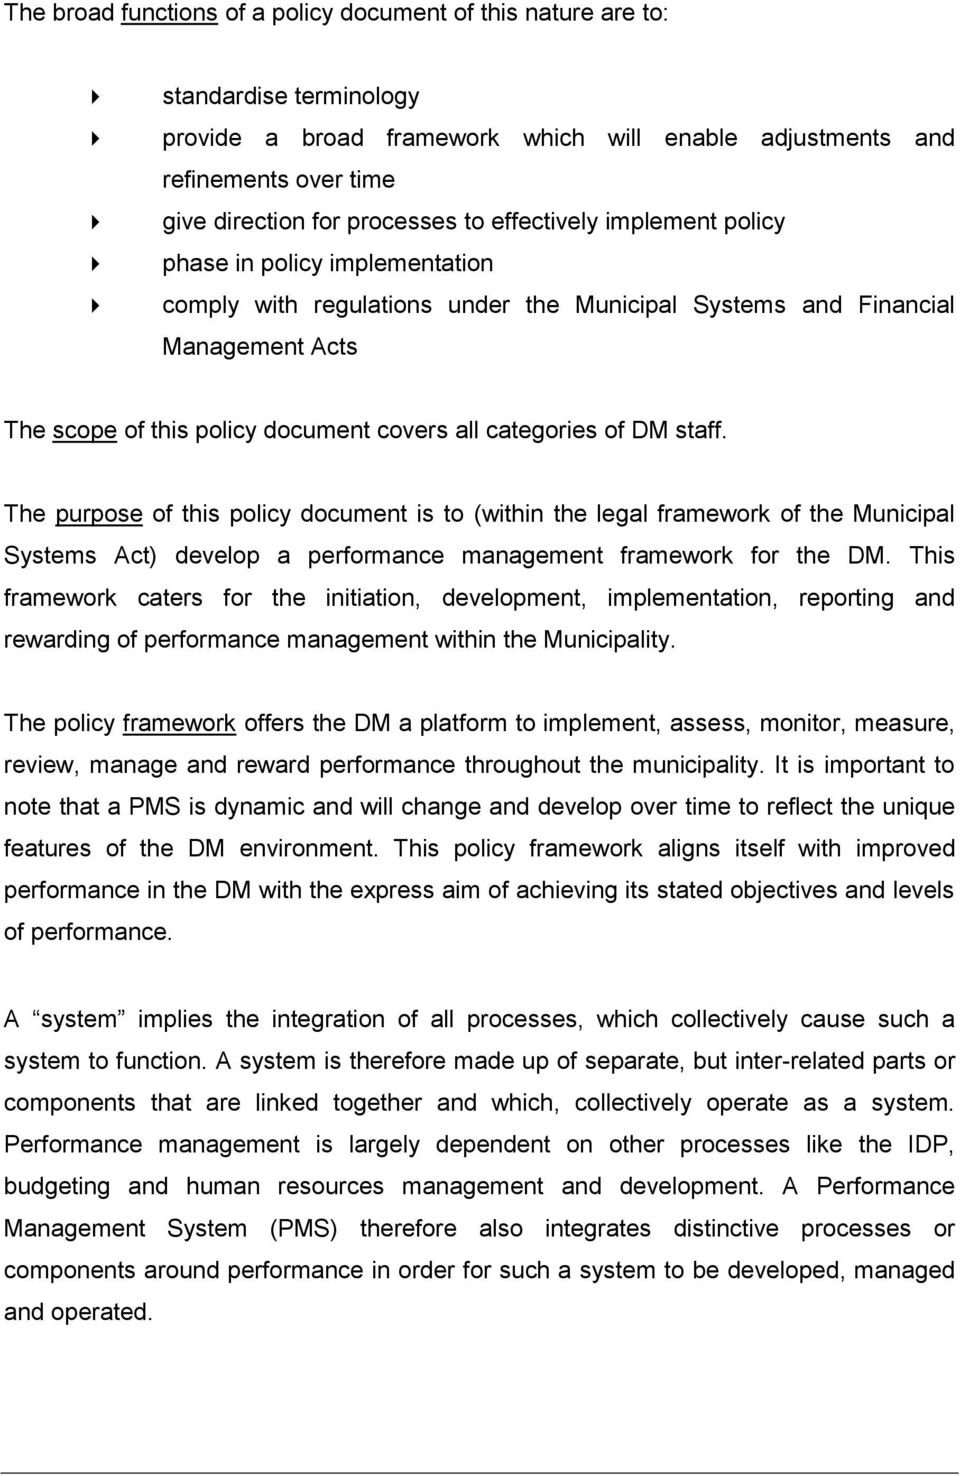 categories of DM staff. The purpose of this policy document is to (within the legal framework of the Municipal Systems Act) develop a performance management framework for the DM.